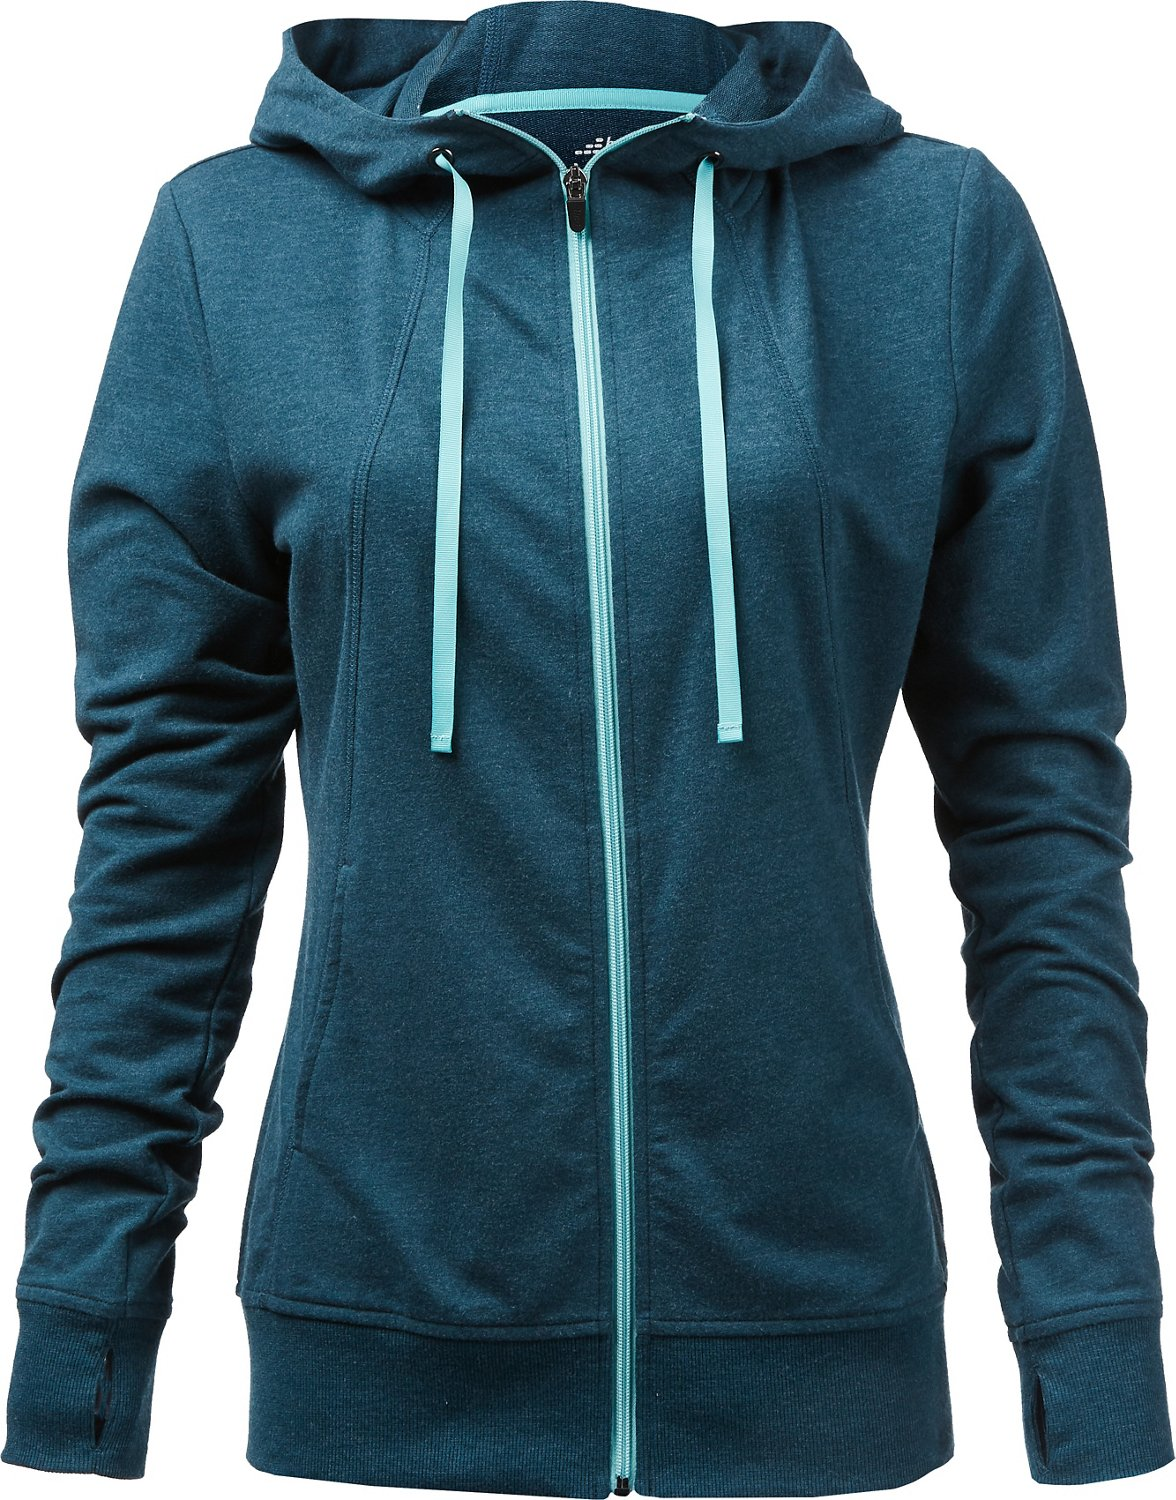 31d4ac26159de Display product reviews for BCG Women's Full Zip Long Sleeve Hoodie